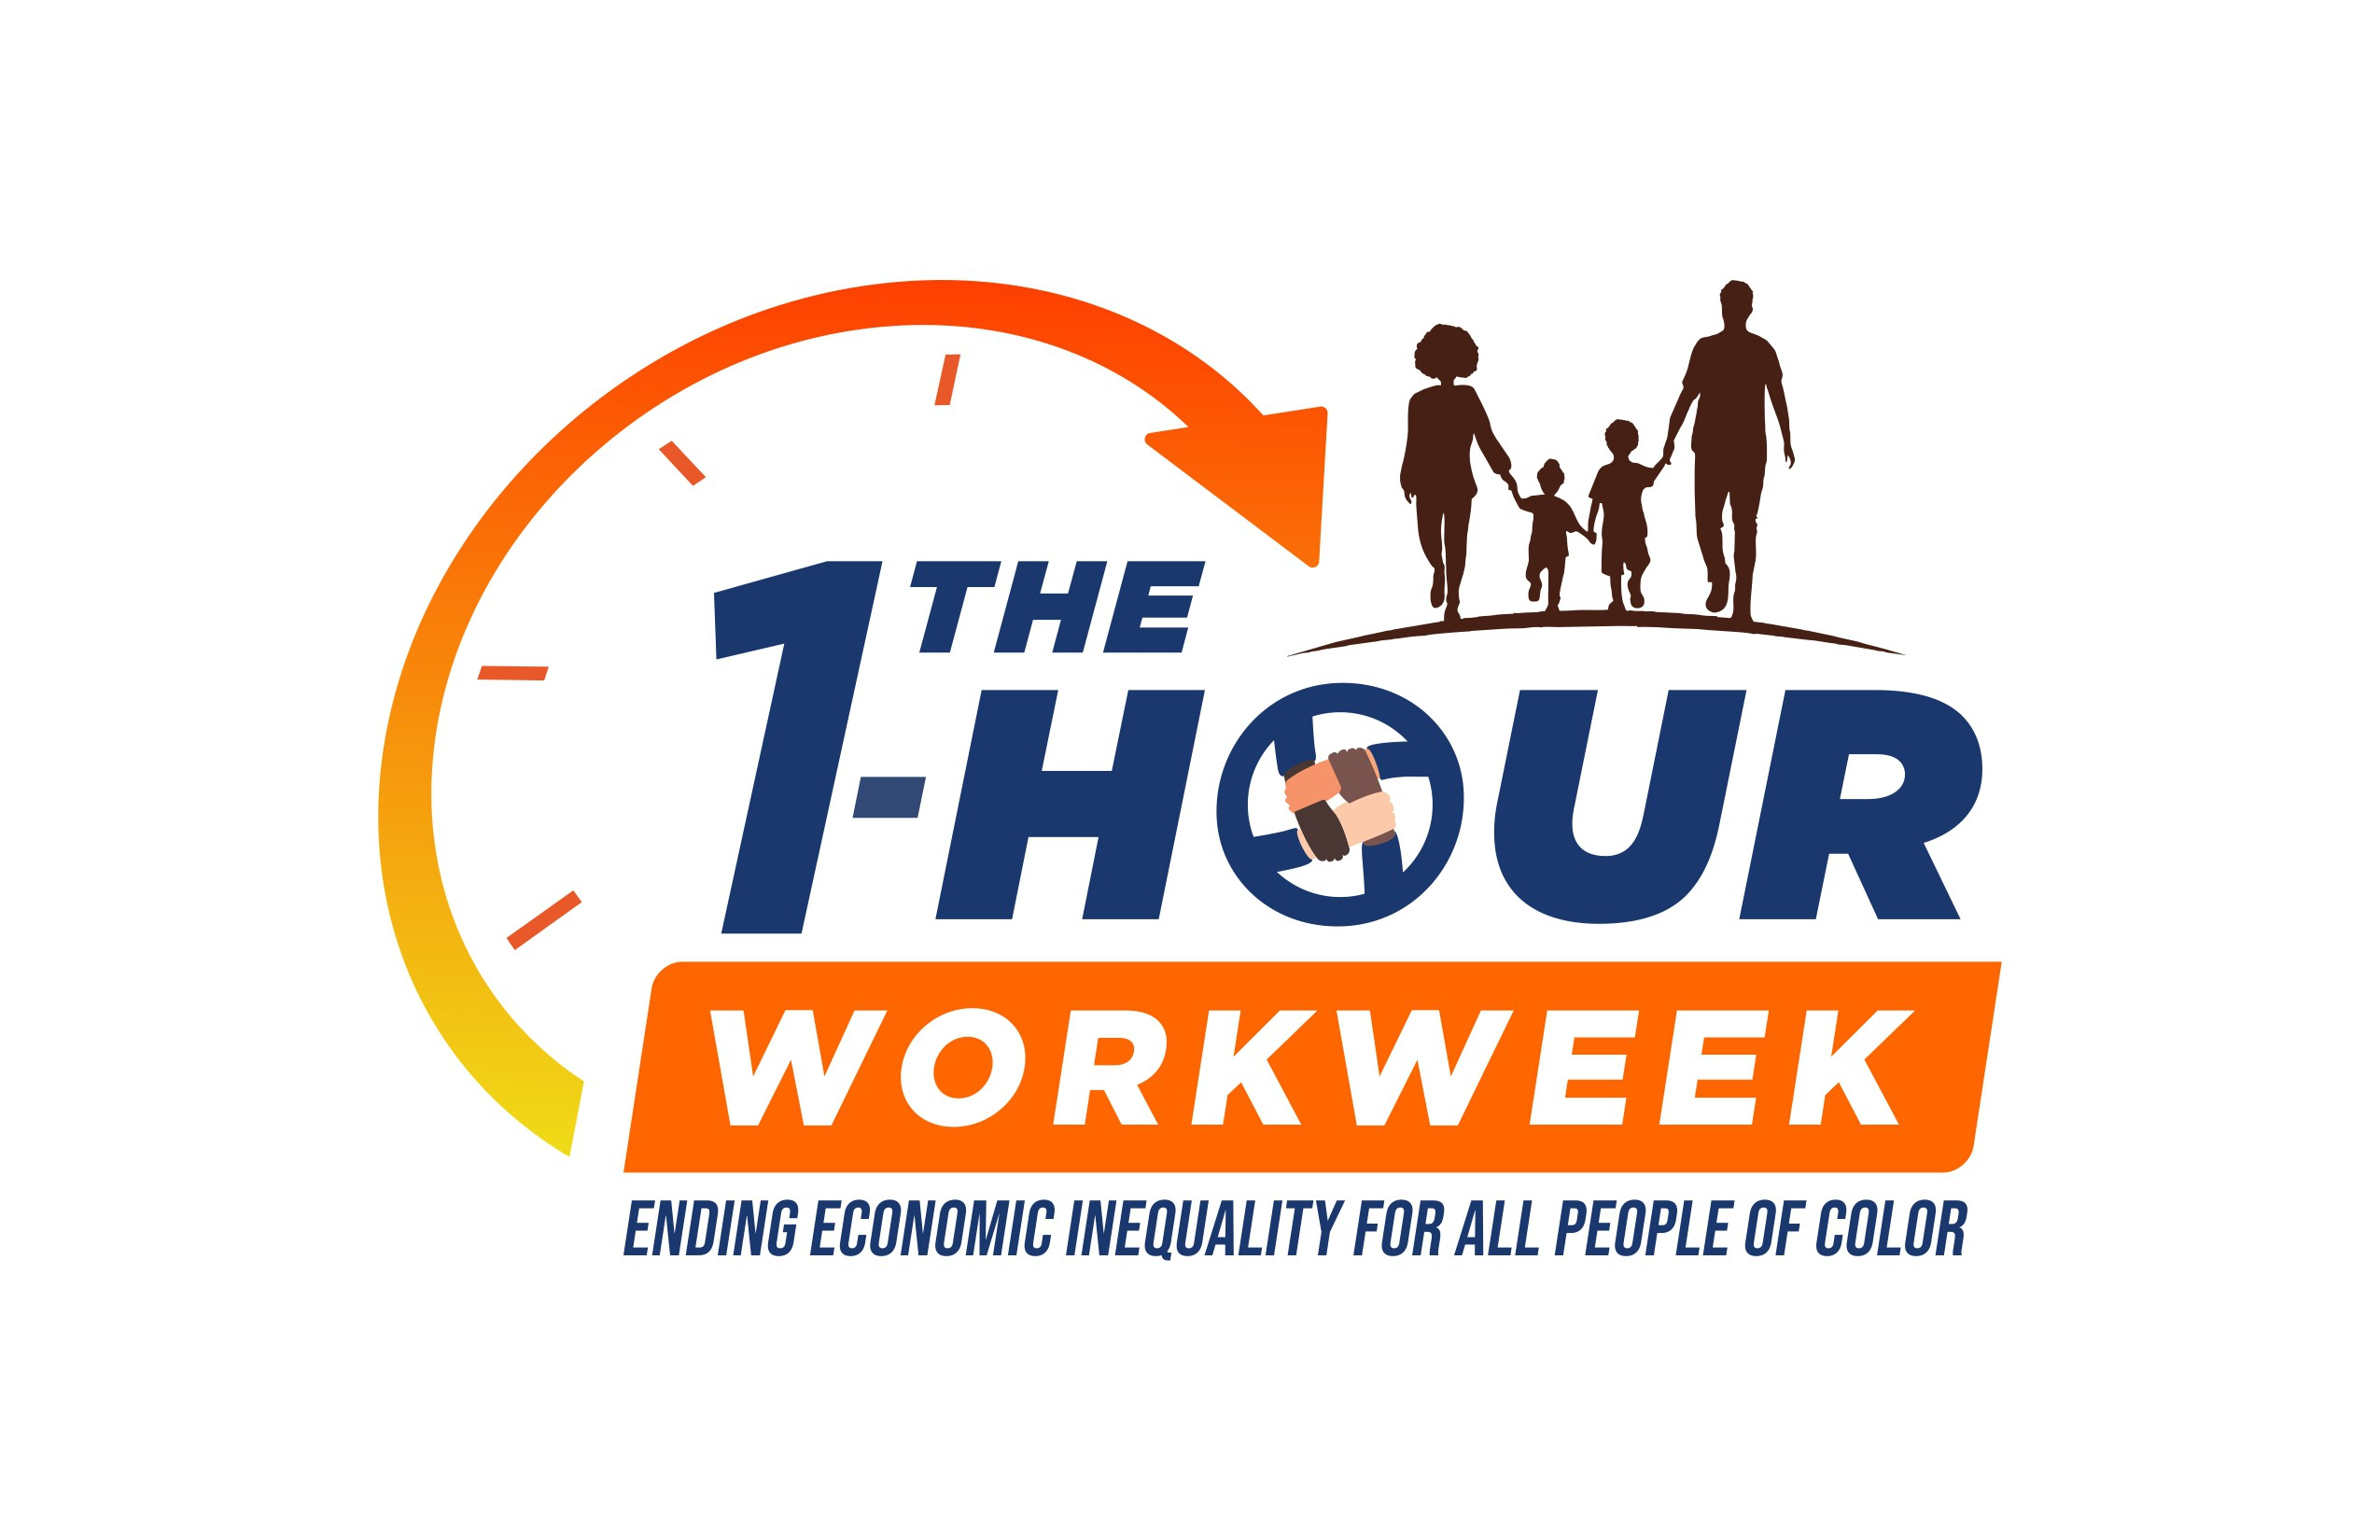 """We need a design to demonstrating """"economic equality for all people of color."""""""